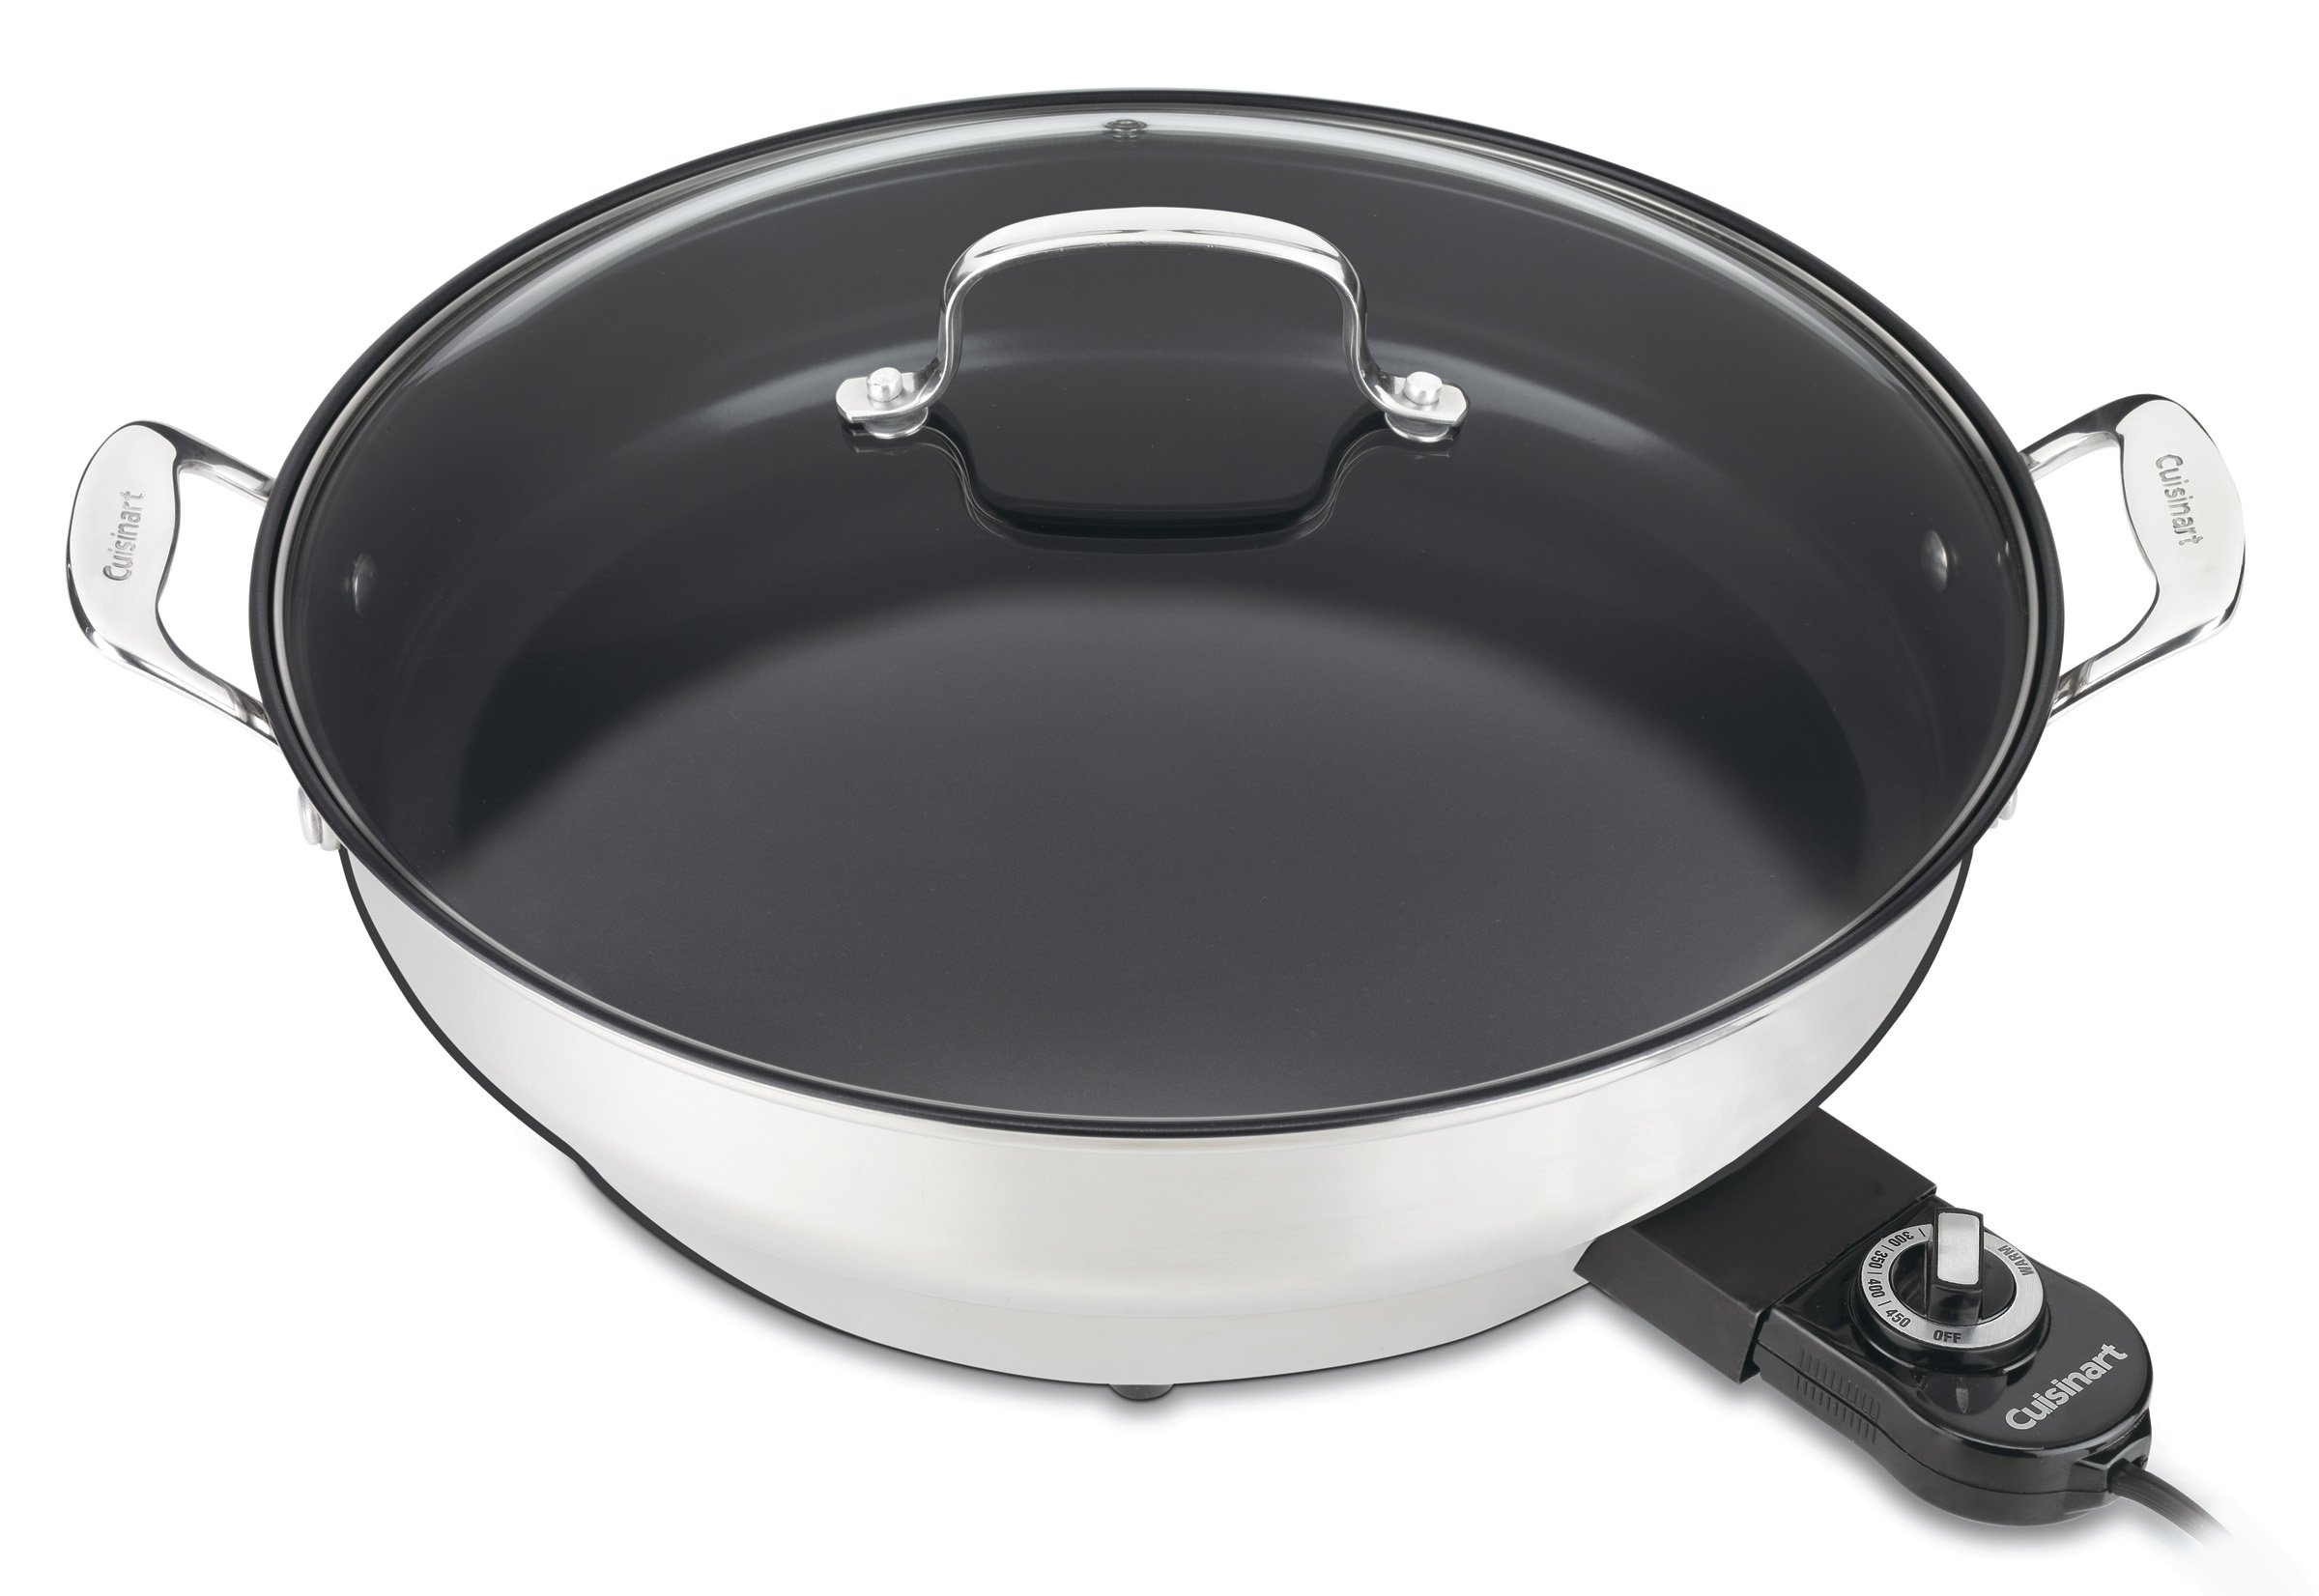 Cuisinart CSK-250WS GreenGourmet 14-Inch Nonstick Electric Skillet by Cuisinart